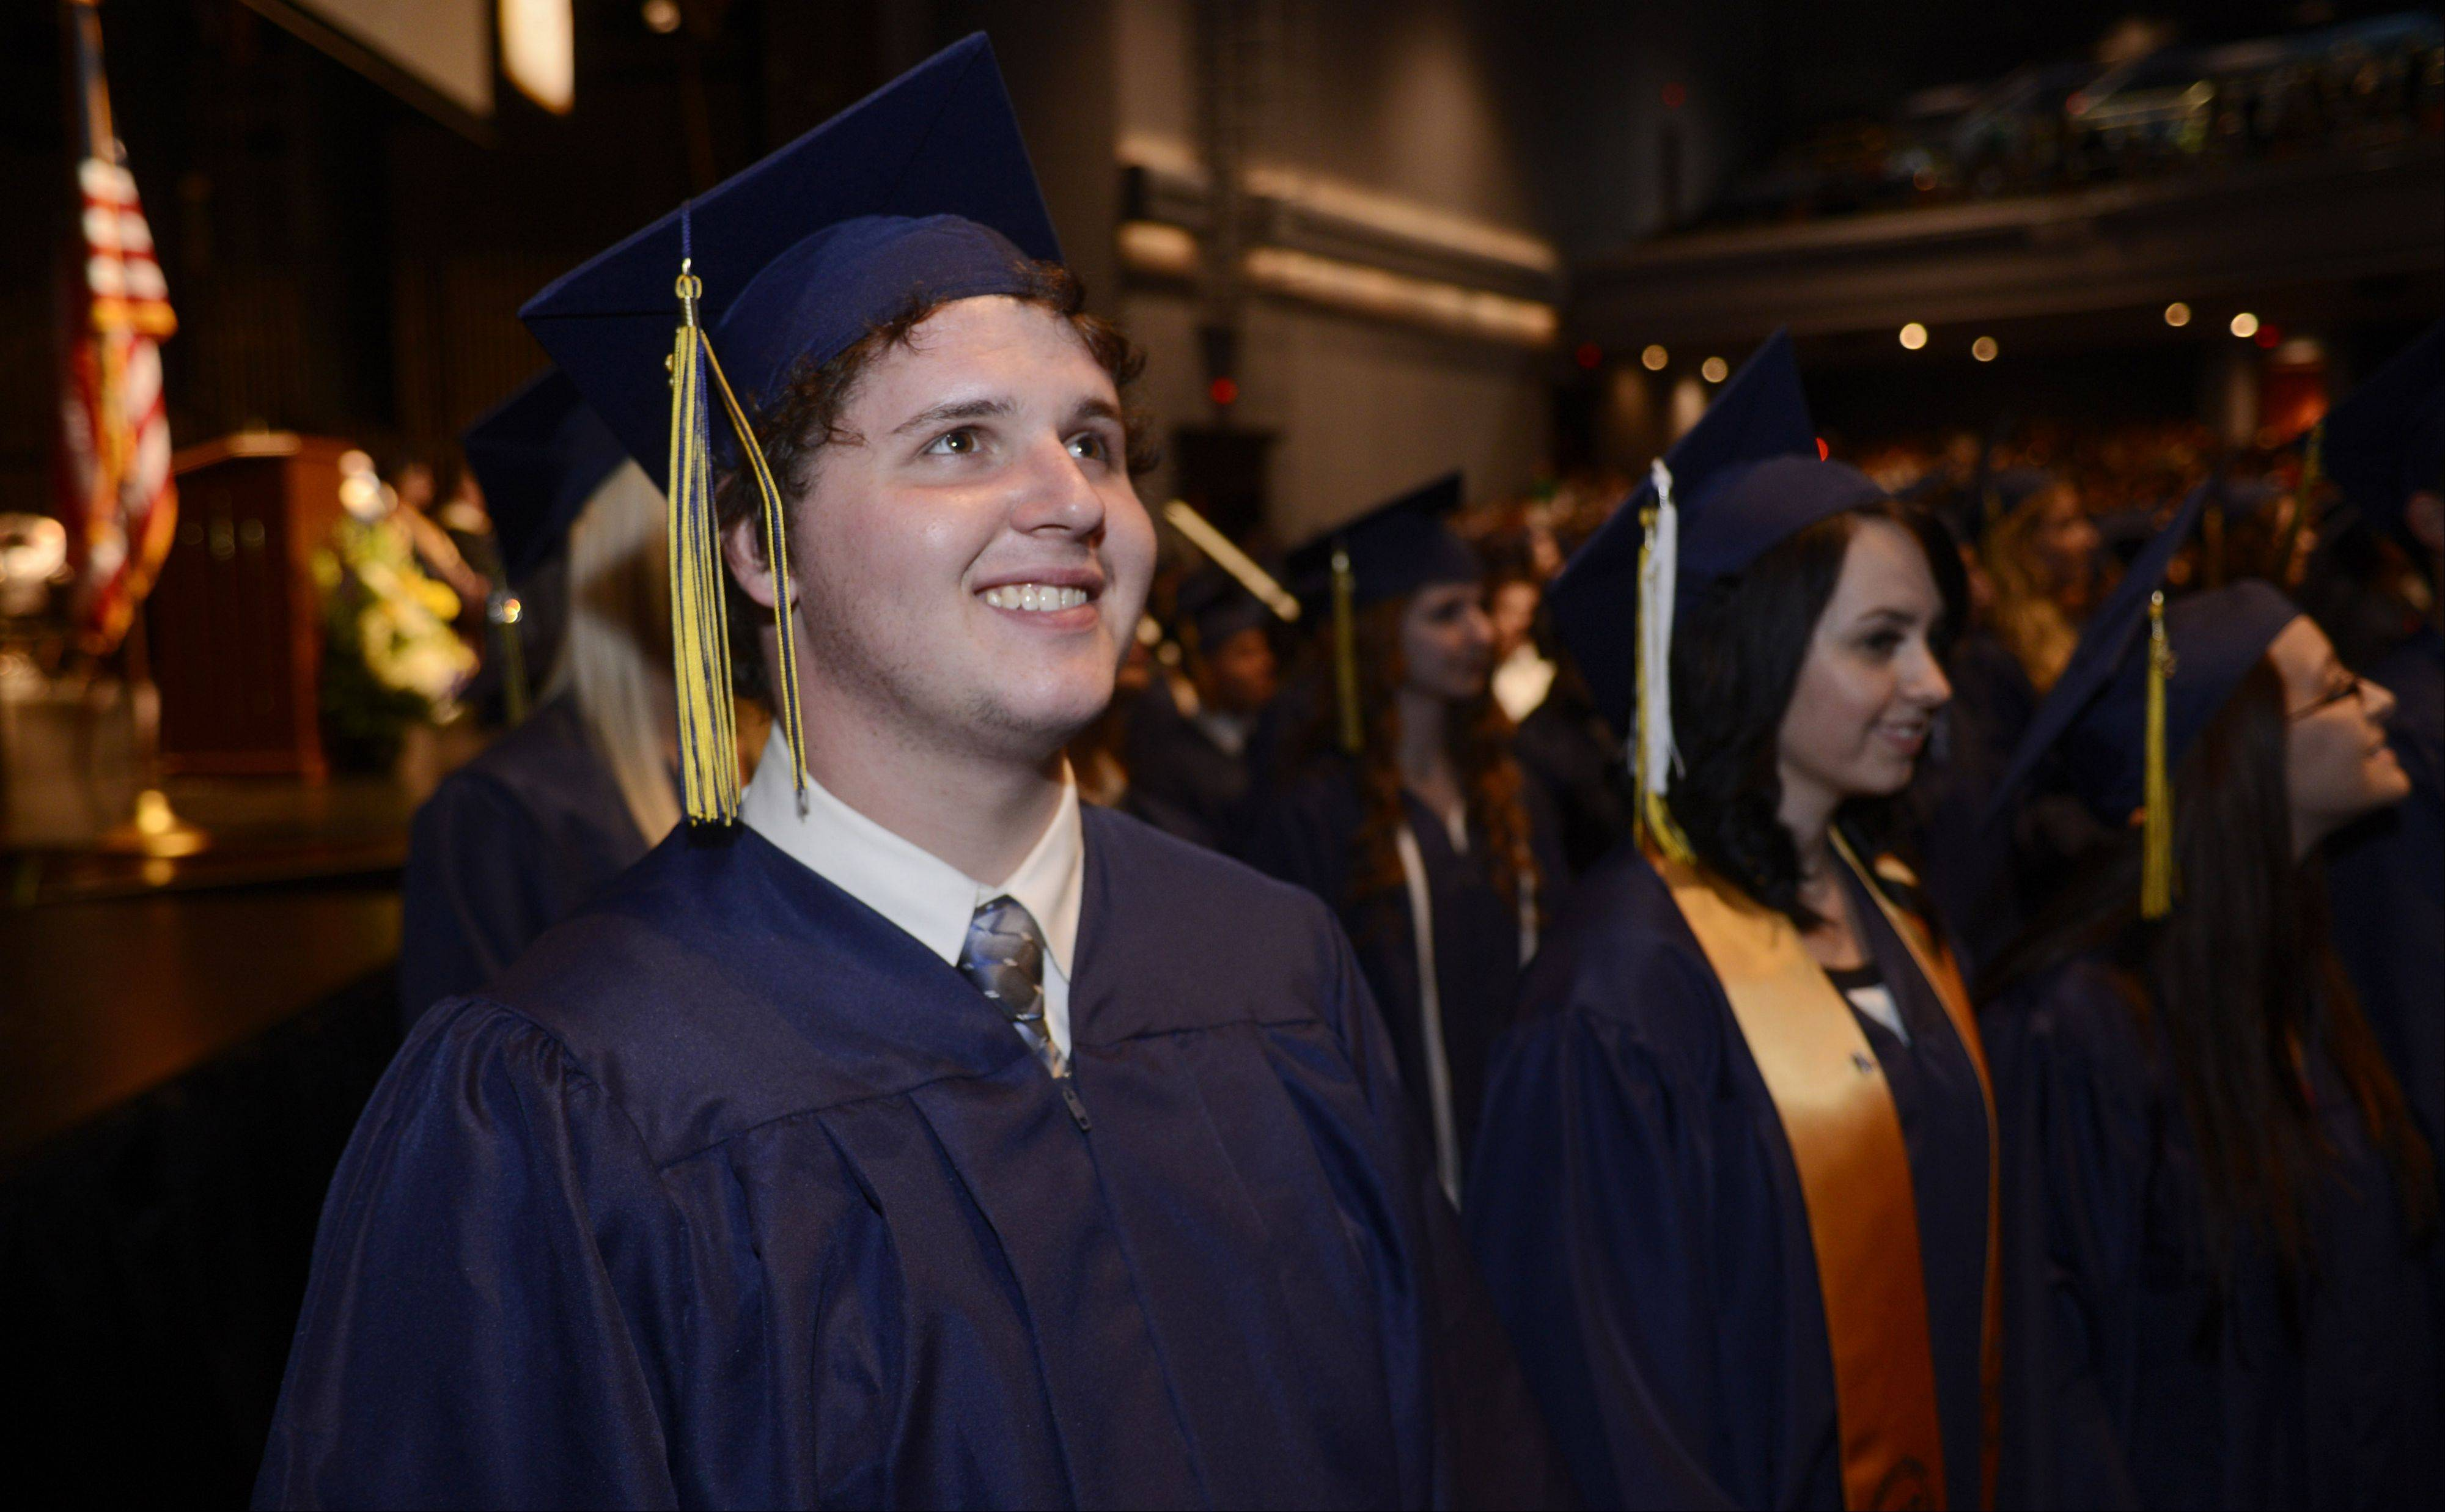 Anthony Brosman, left, and fellow classmates turn toward the audience during the processional of the East Leyden High School graduation at the Rosemont Theatre Tuesday.